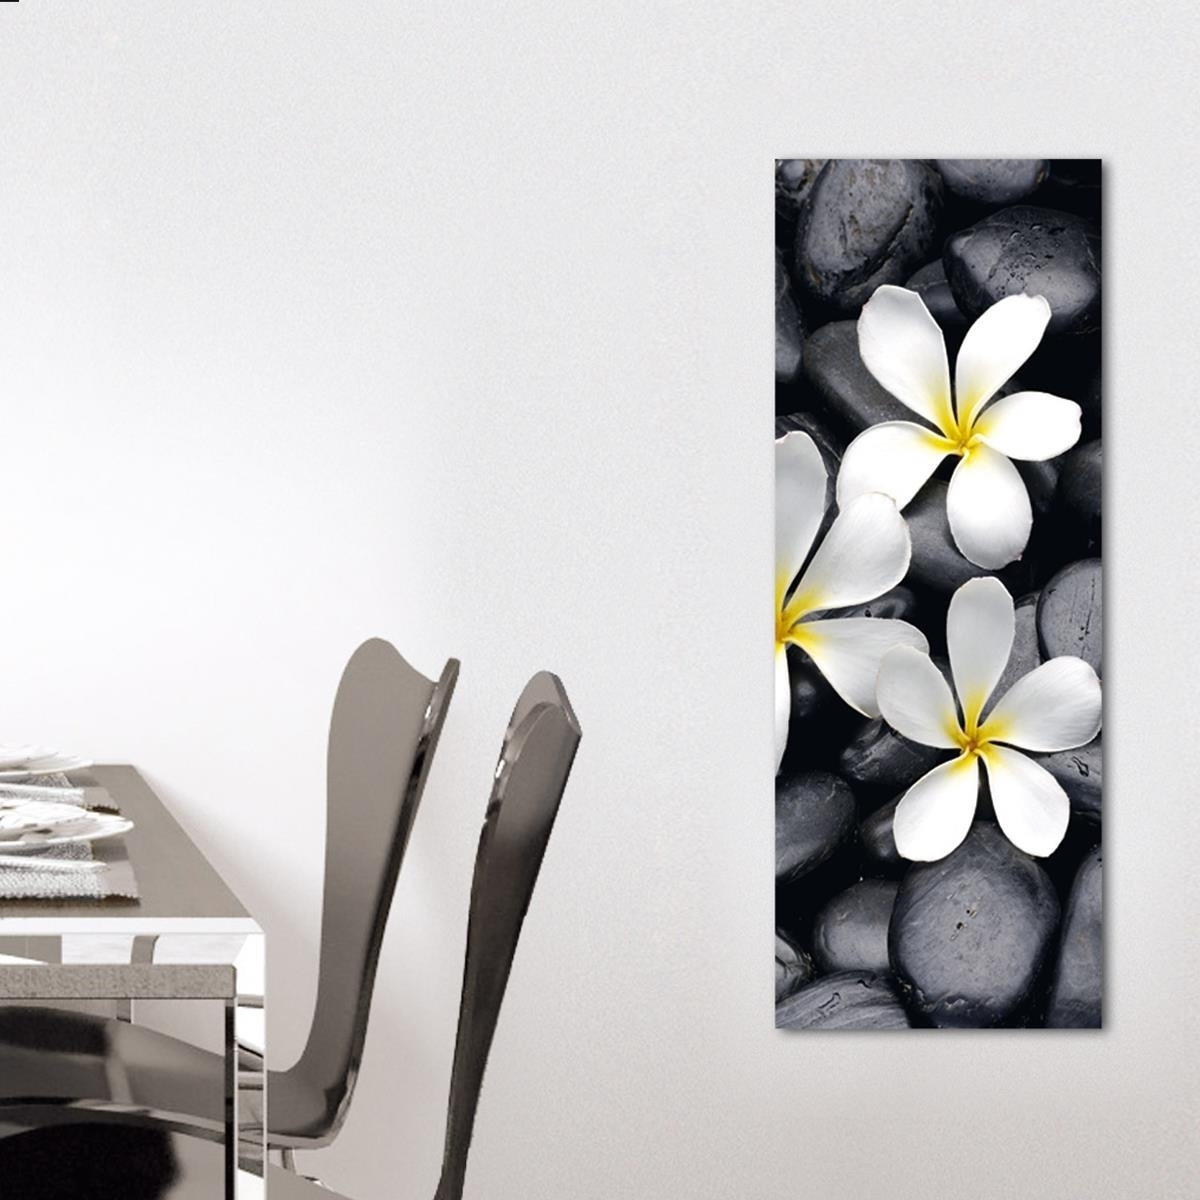 Wall Art Ideas Design : Simply Working Glass Wall Art And Decor Inside Famous Glass Wall Artworks (View 13 of 15)